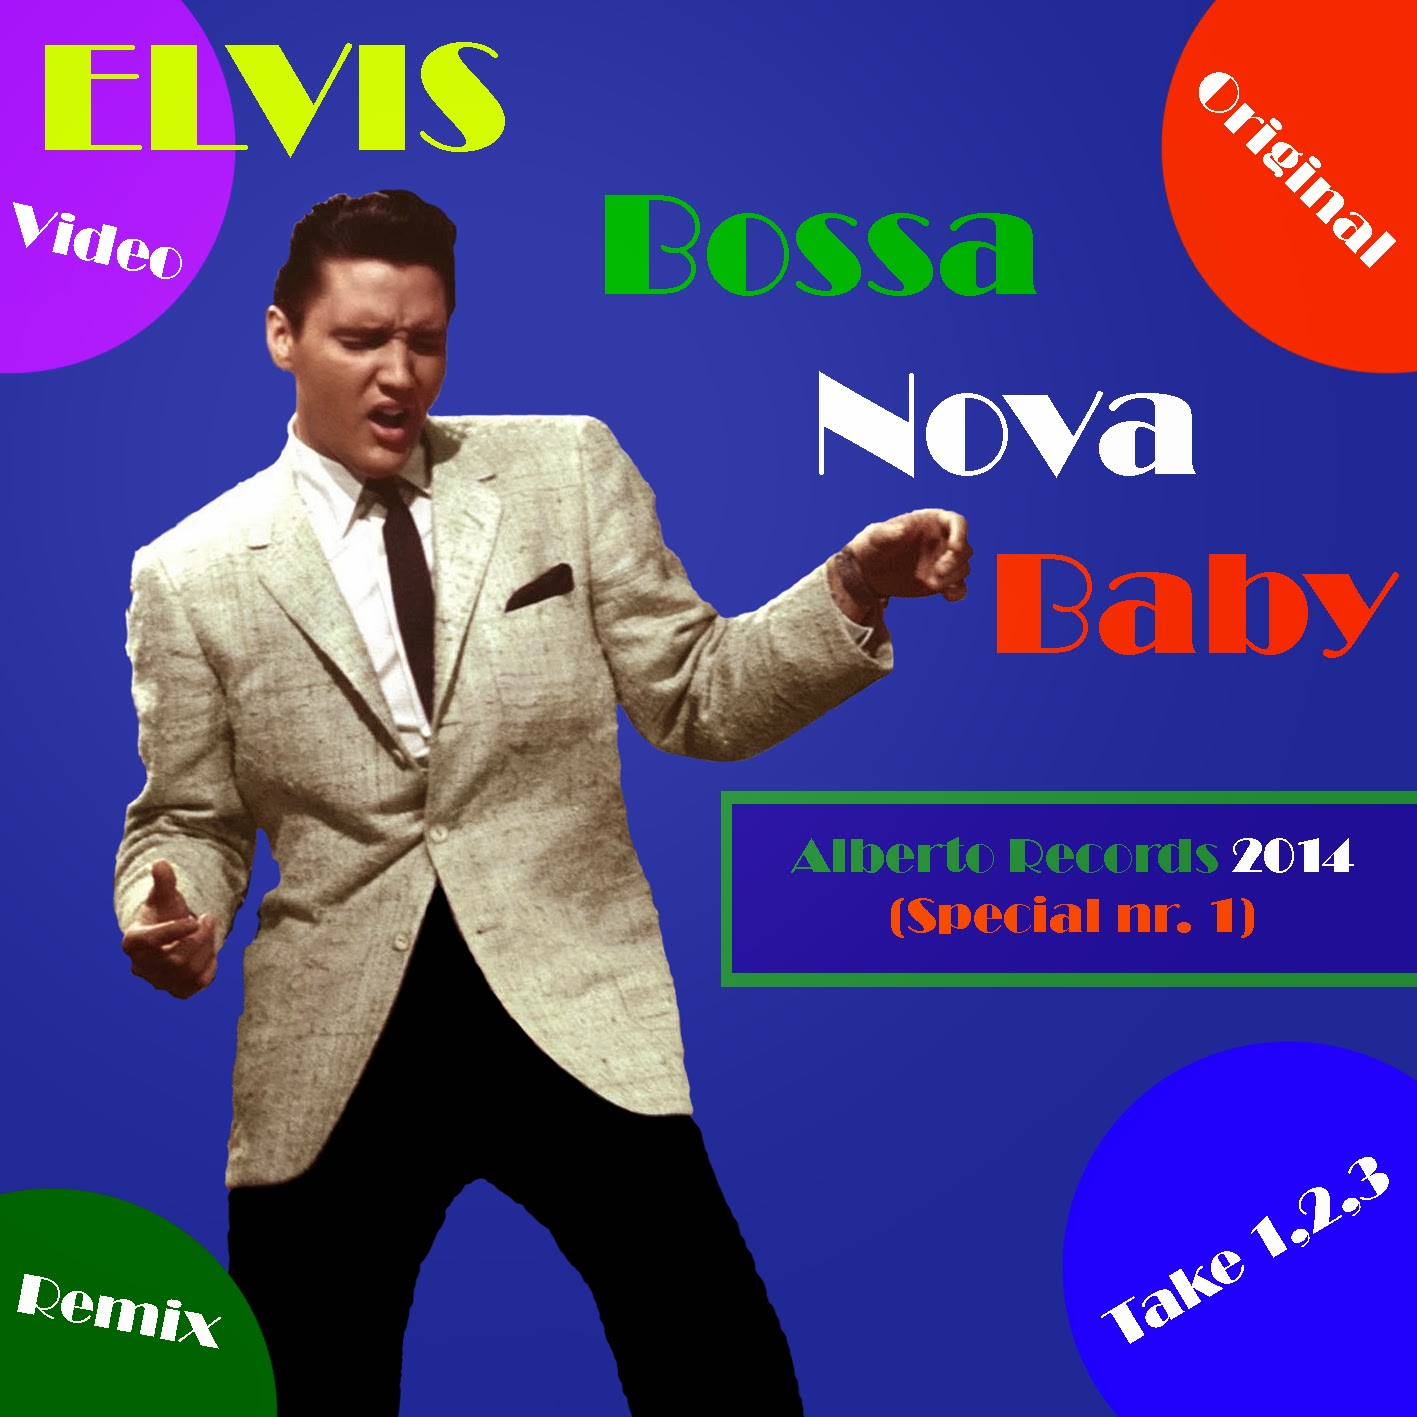 Elvis Bossa Nova Baby (May 2014)